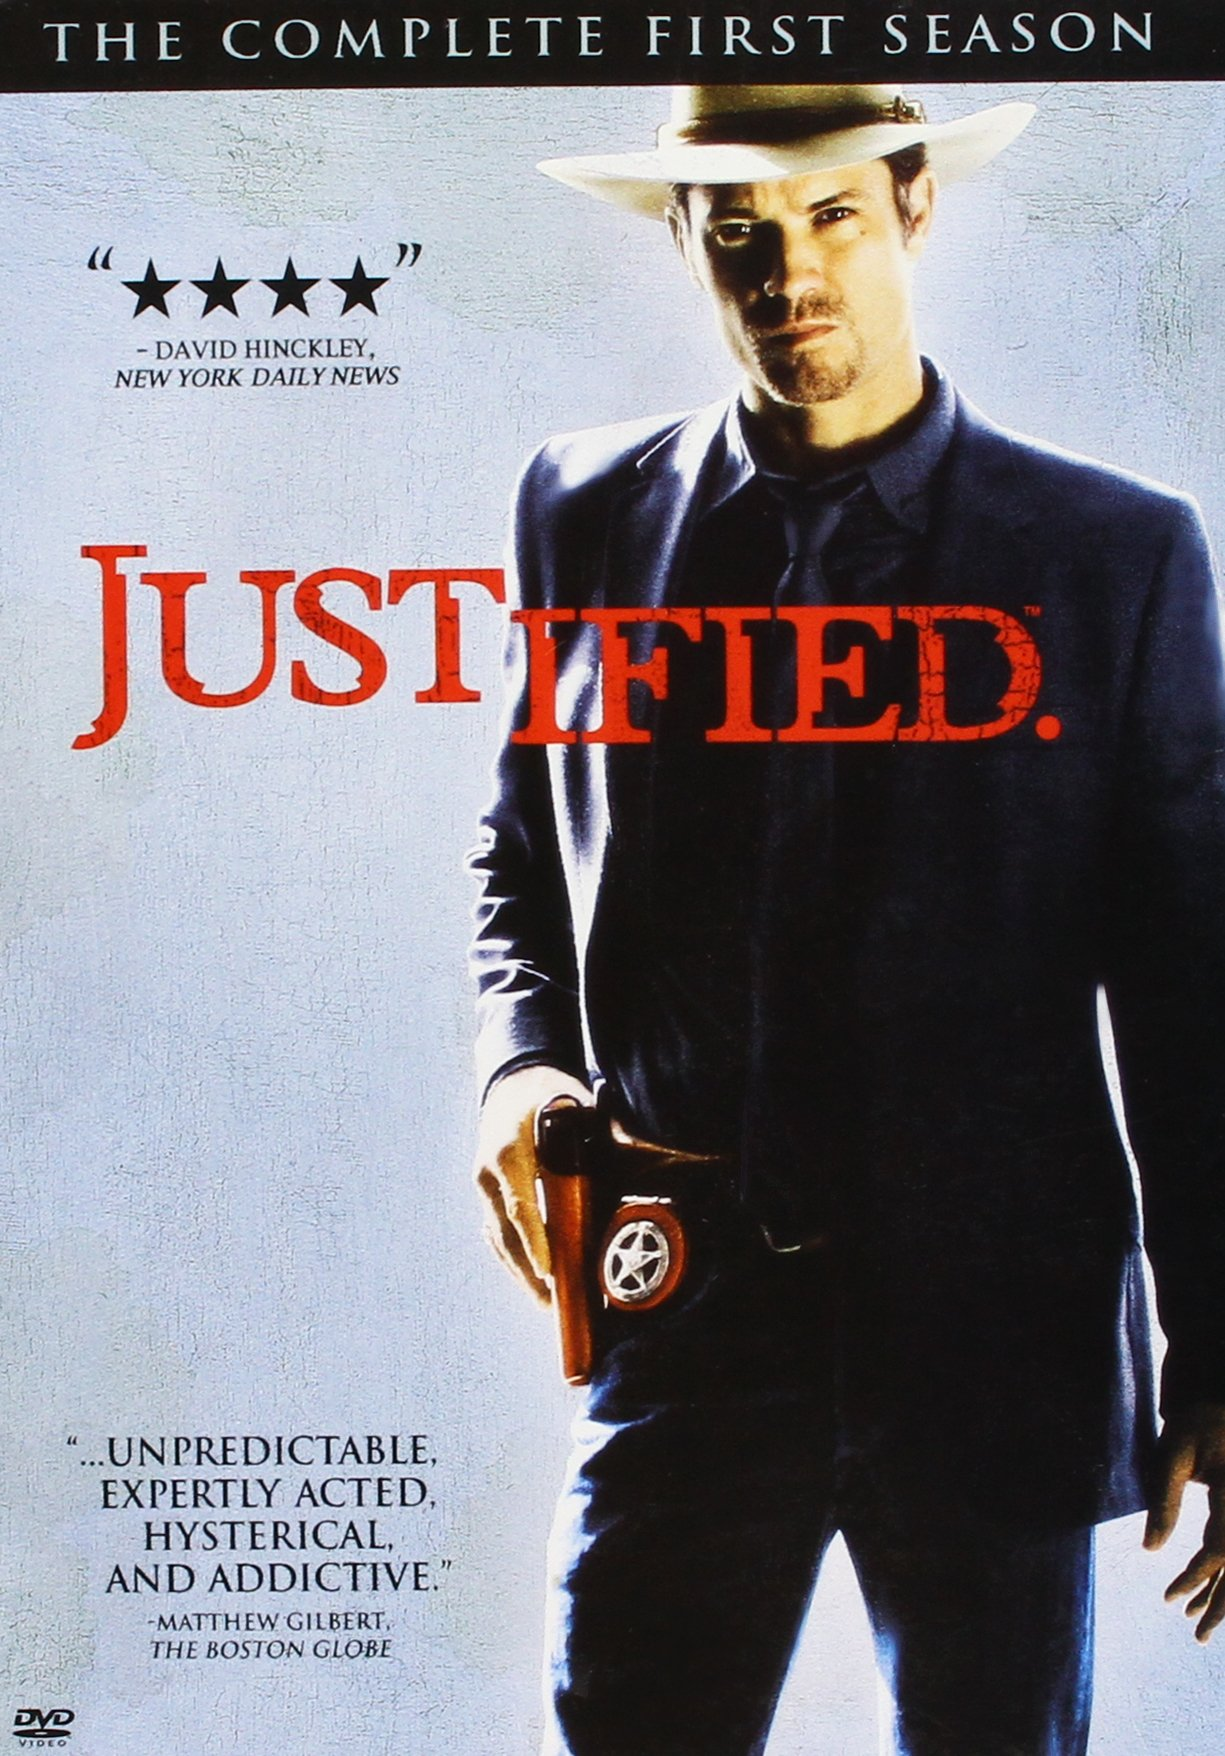 Justified : Complete Seasons 1- 5 Bundle Collection (15-Disc, DVD, 2014)